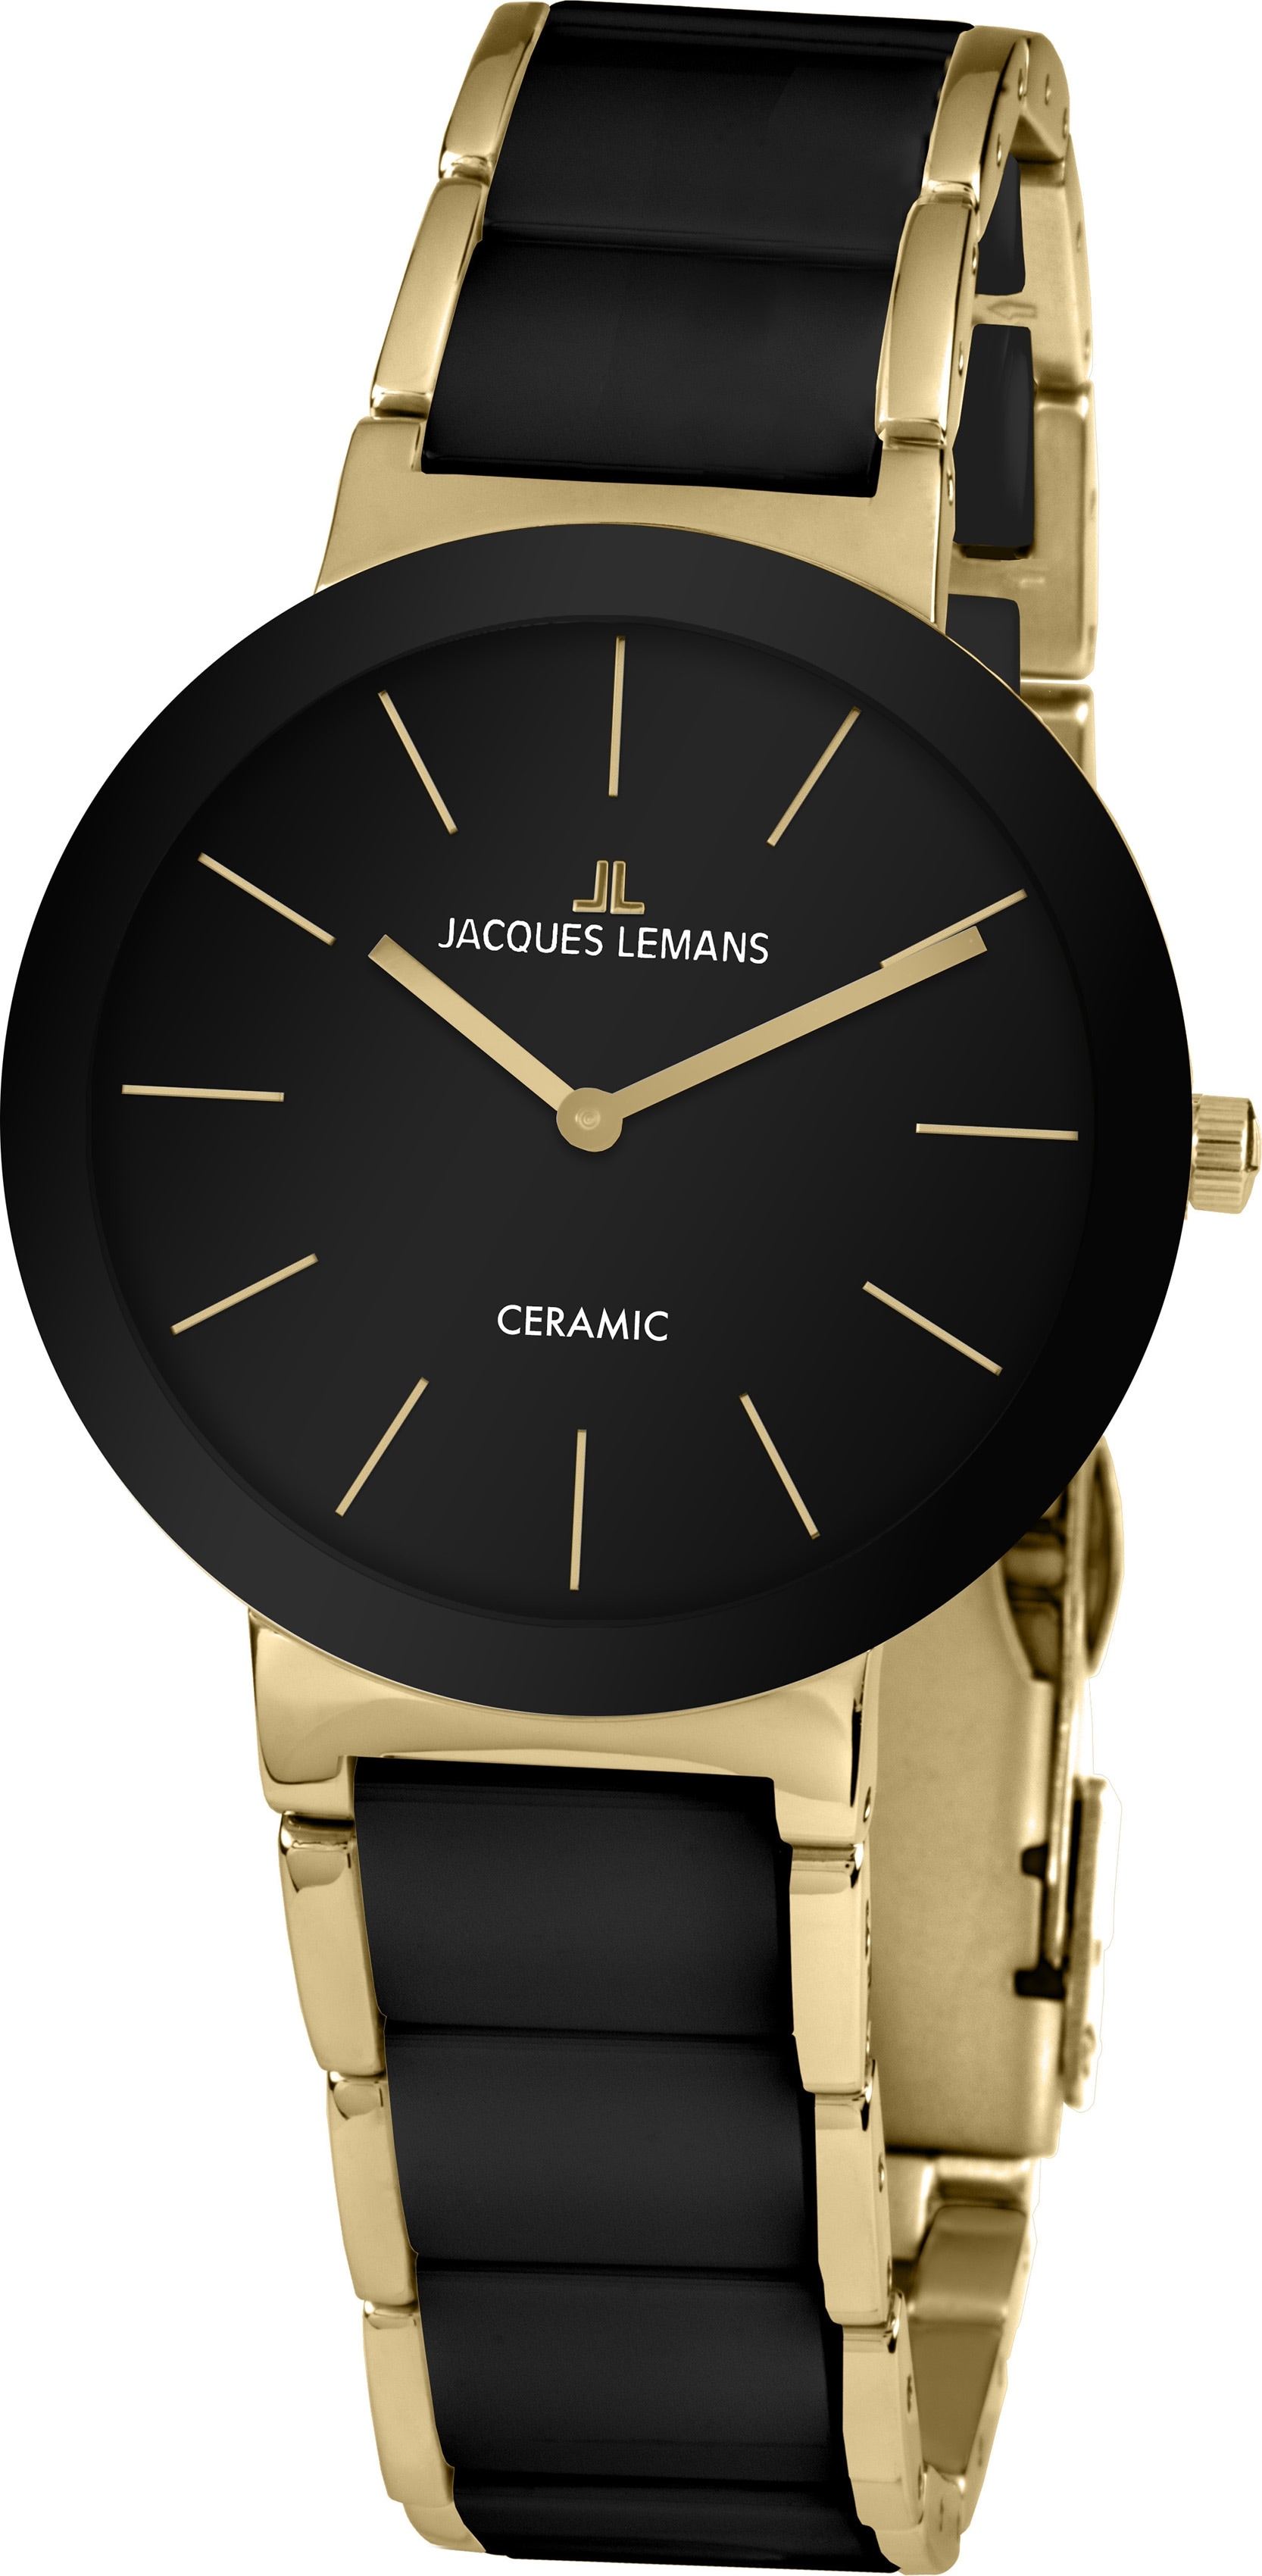 Jacques Lemans Quarzuhr High-Tech Ceramic, 42-7E günstig online kaufen